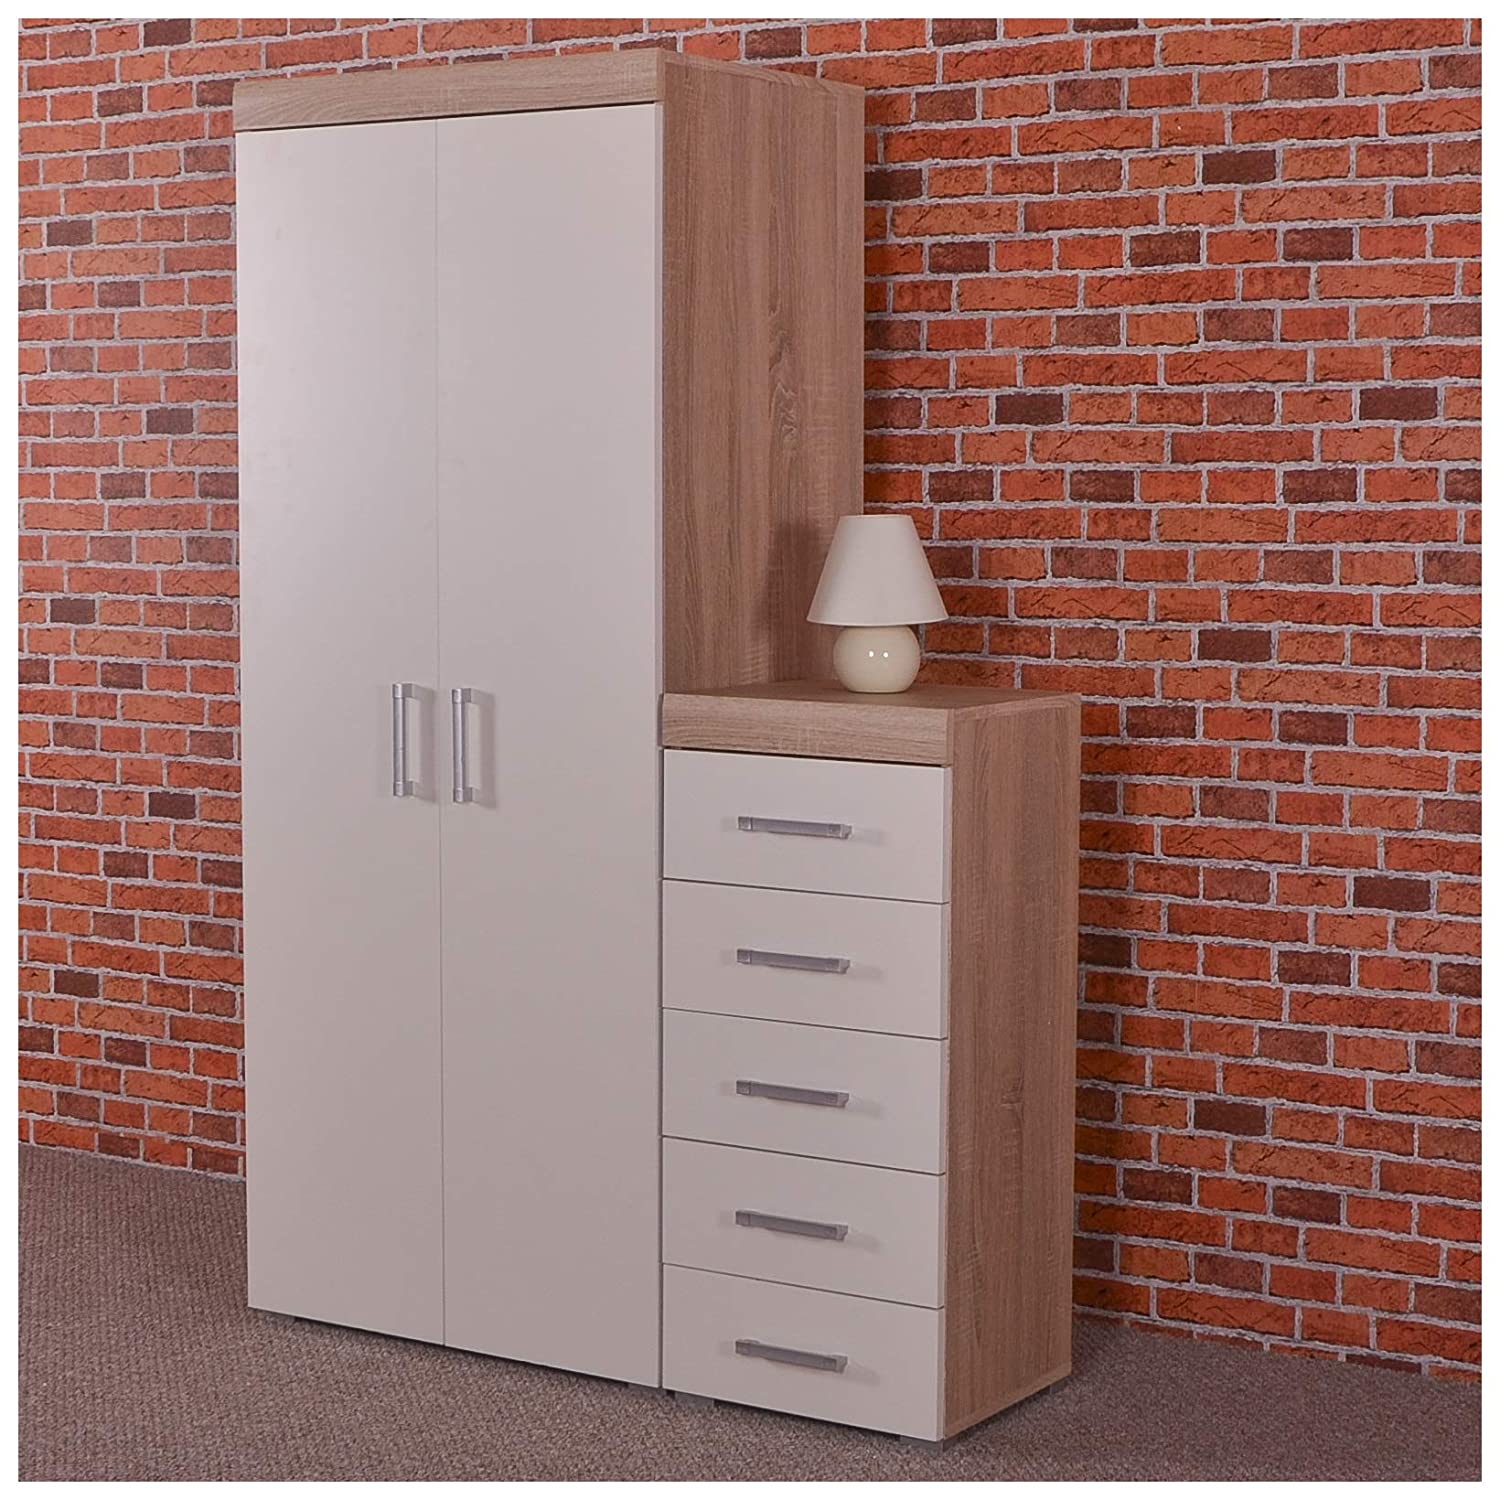 DRP Trading 2 Door Wardrobe & 5 Drawer Tall Boy Chest in White & Sonoma Oak Bedroom Furniture Set